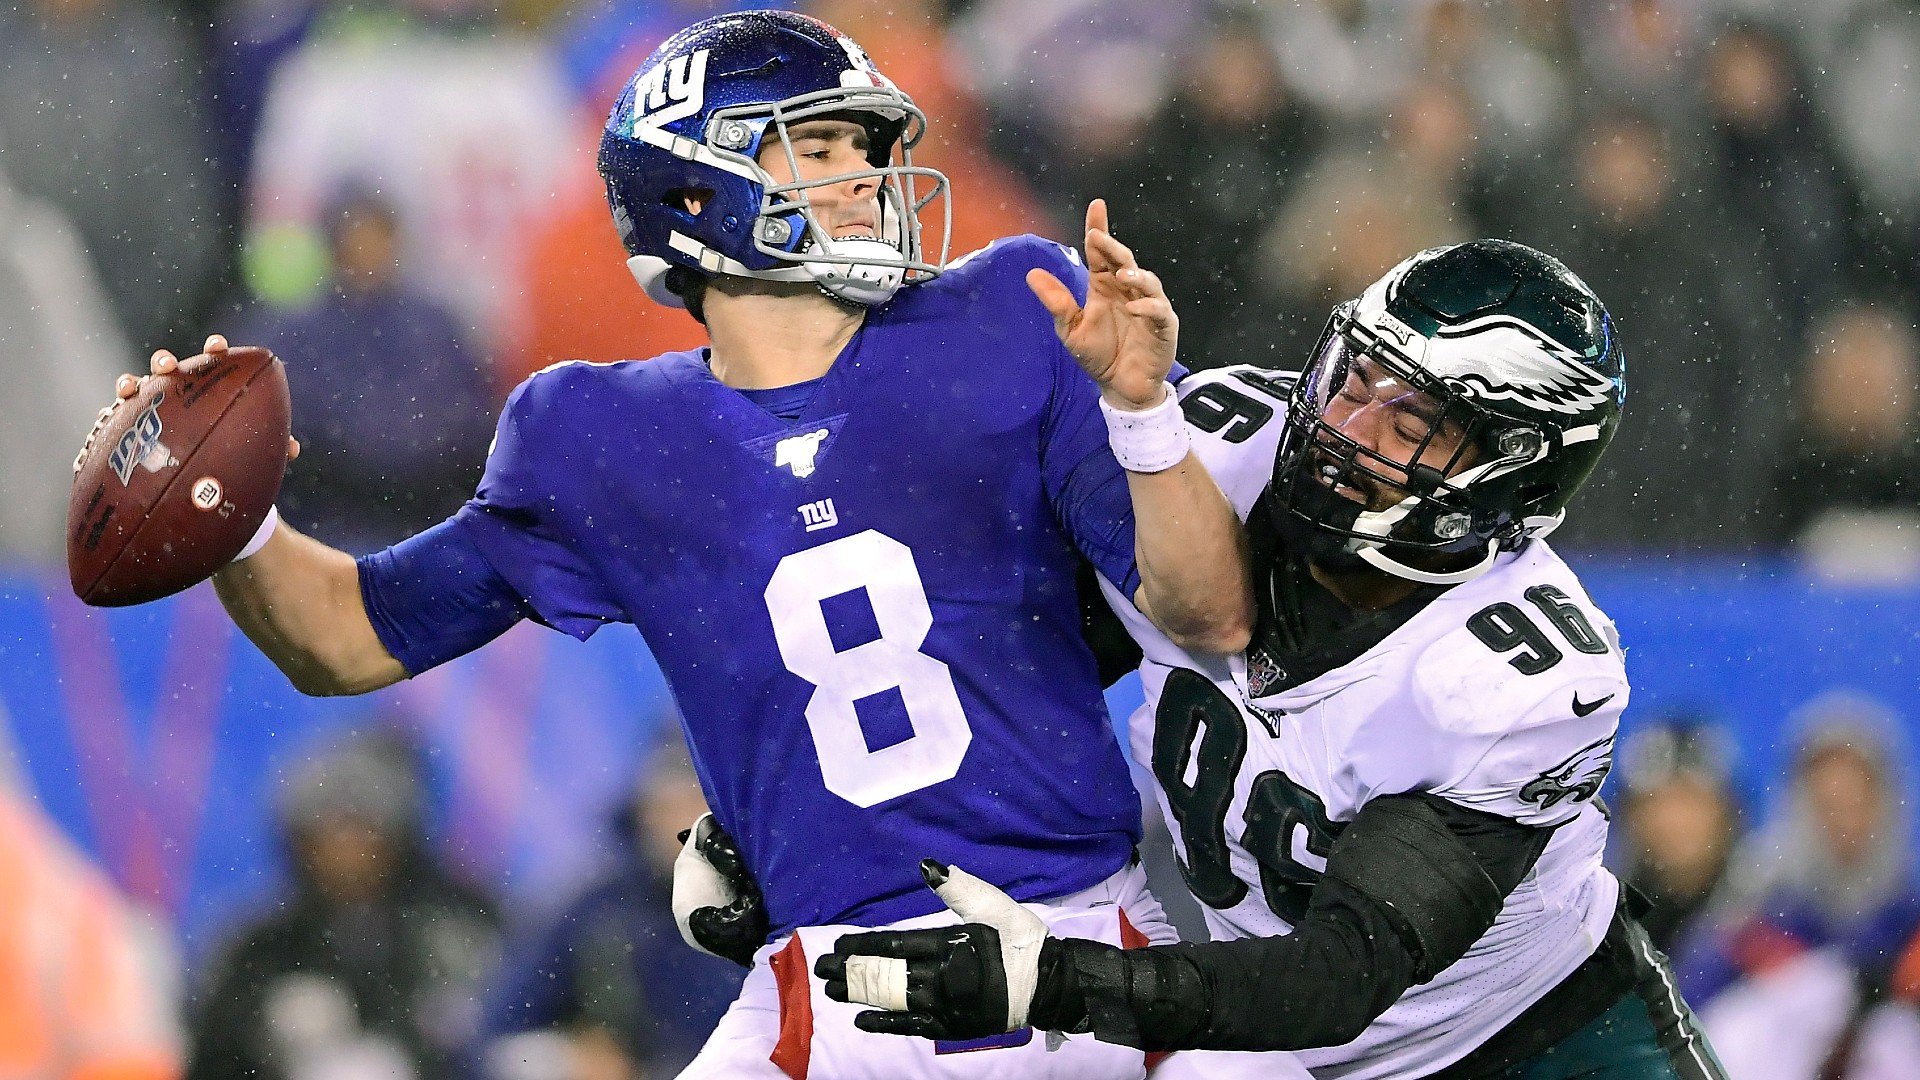 Giants vs. Eagles odds, prediction, betting trends for NFL's 'Thursday Night Football' game